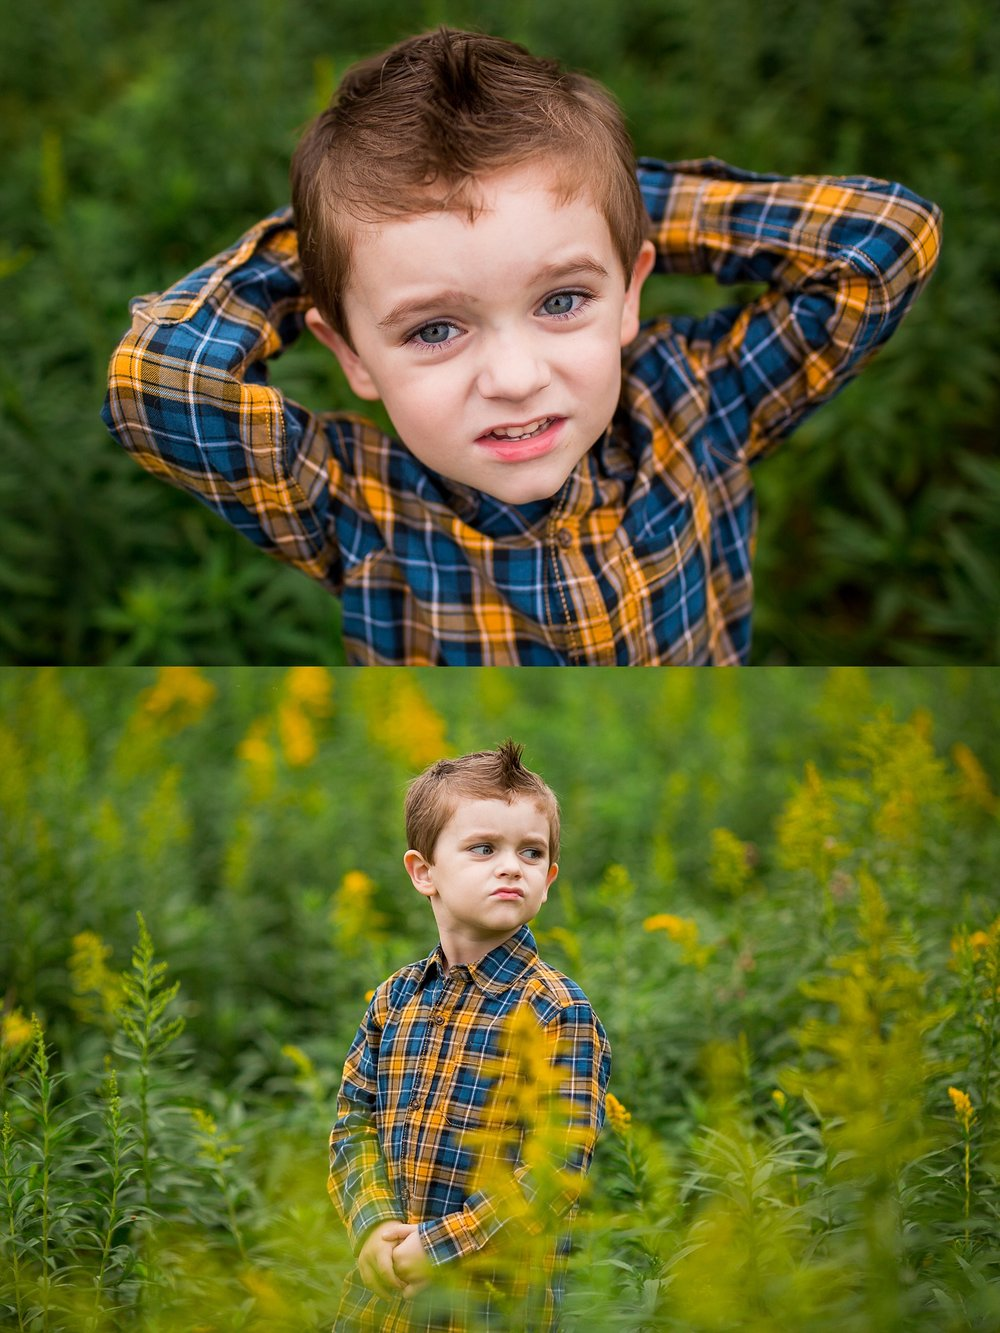 Highlands Wyomissing Fall Child Children Photoshoot